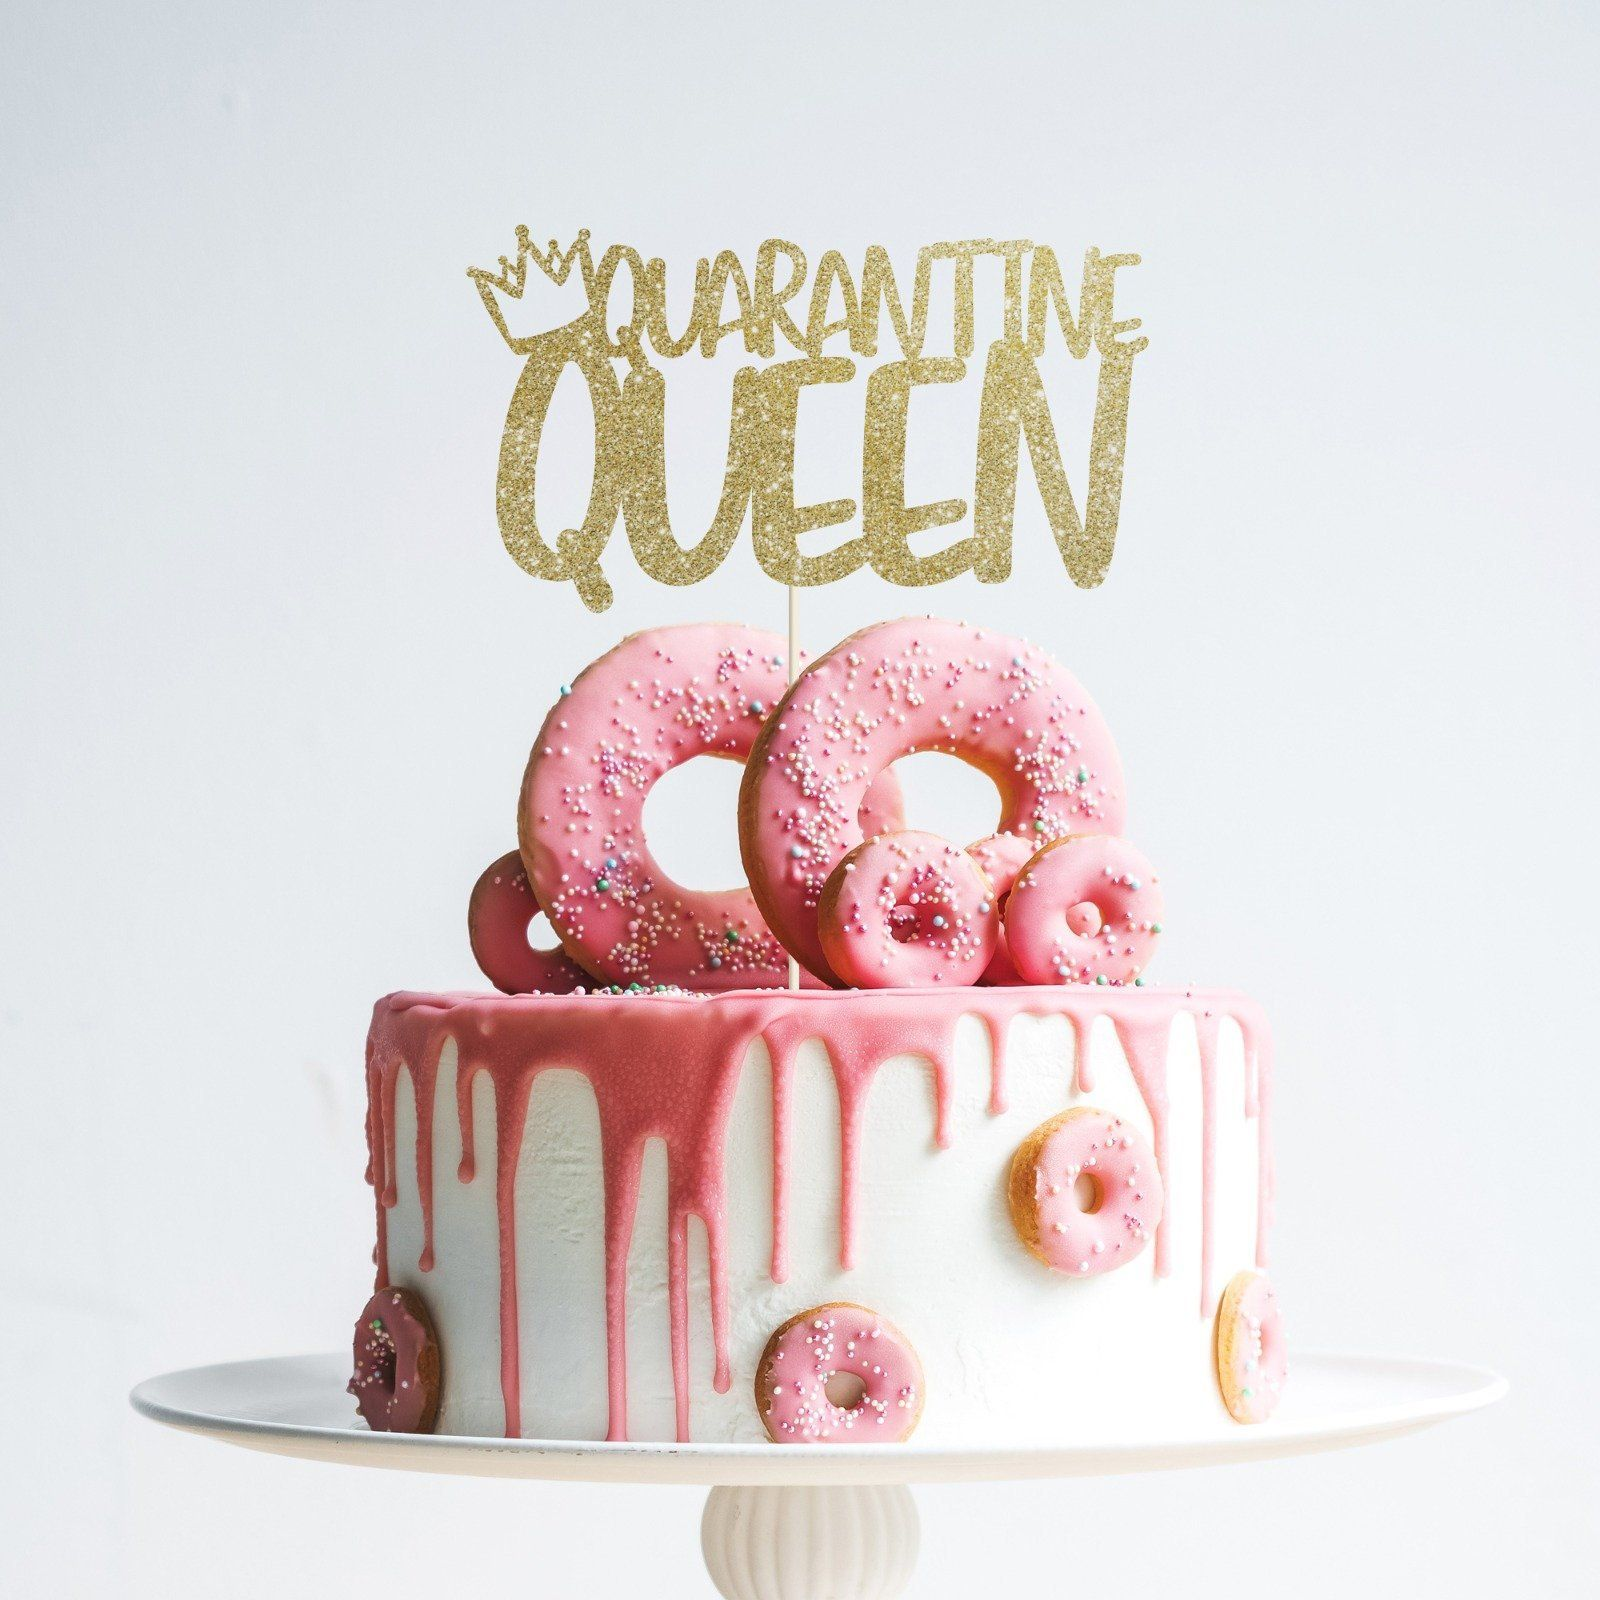 Wondrous Quarantine Queen Birthday Cake Topper Women Birthday Social Funny Birthday Cards Online Elaedamsfinfo